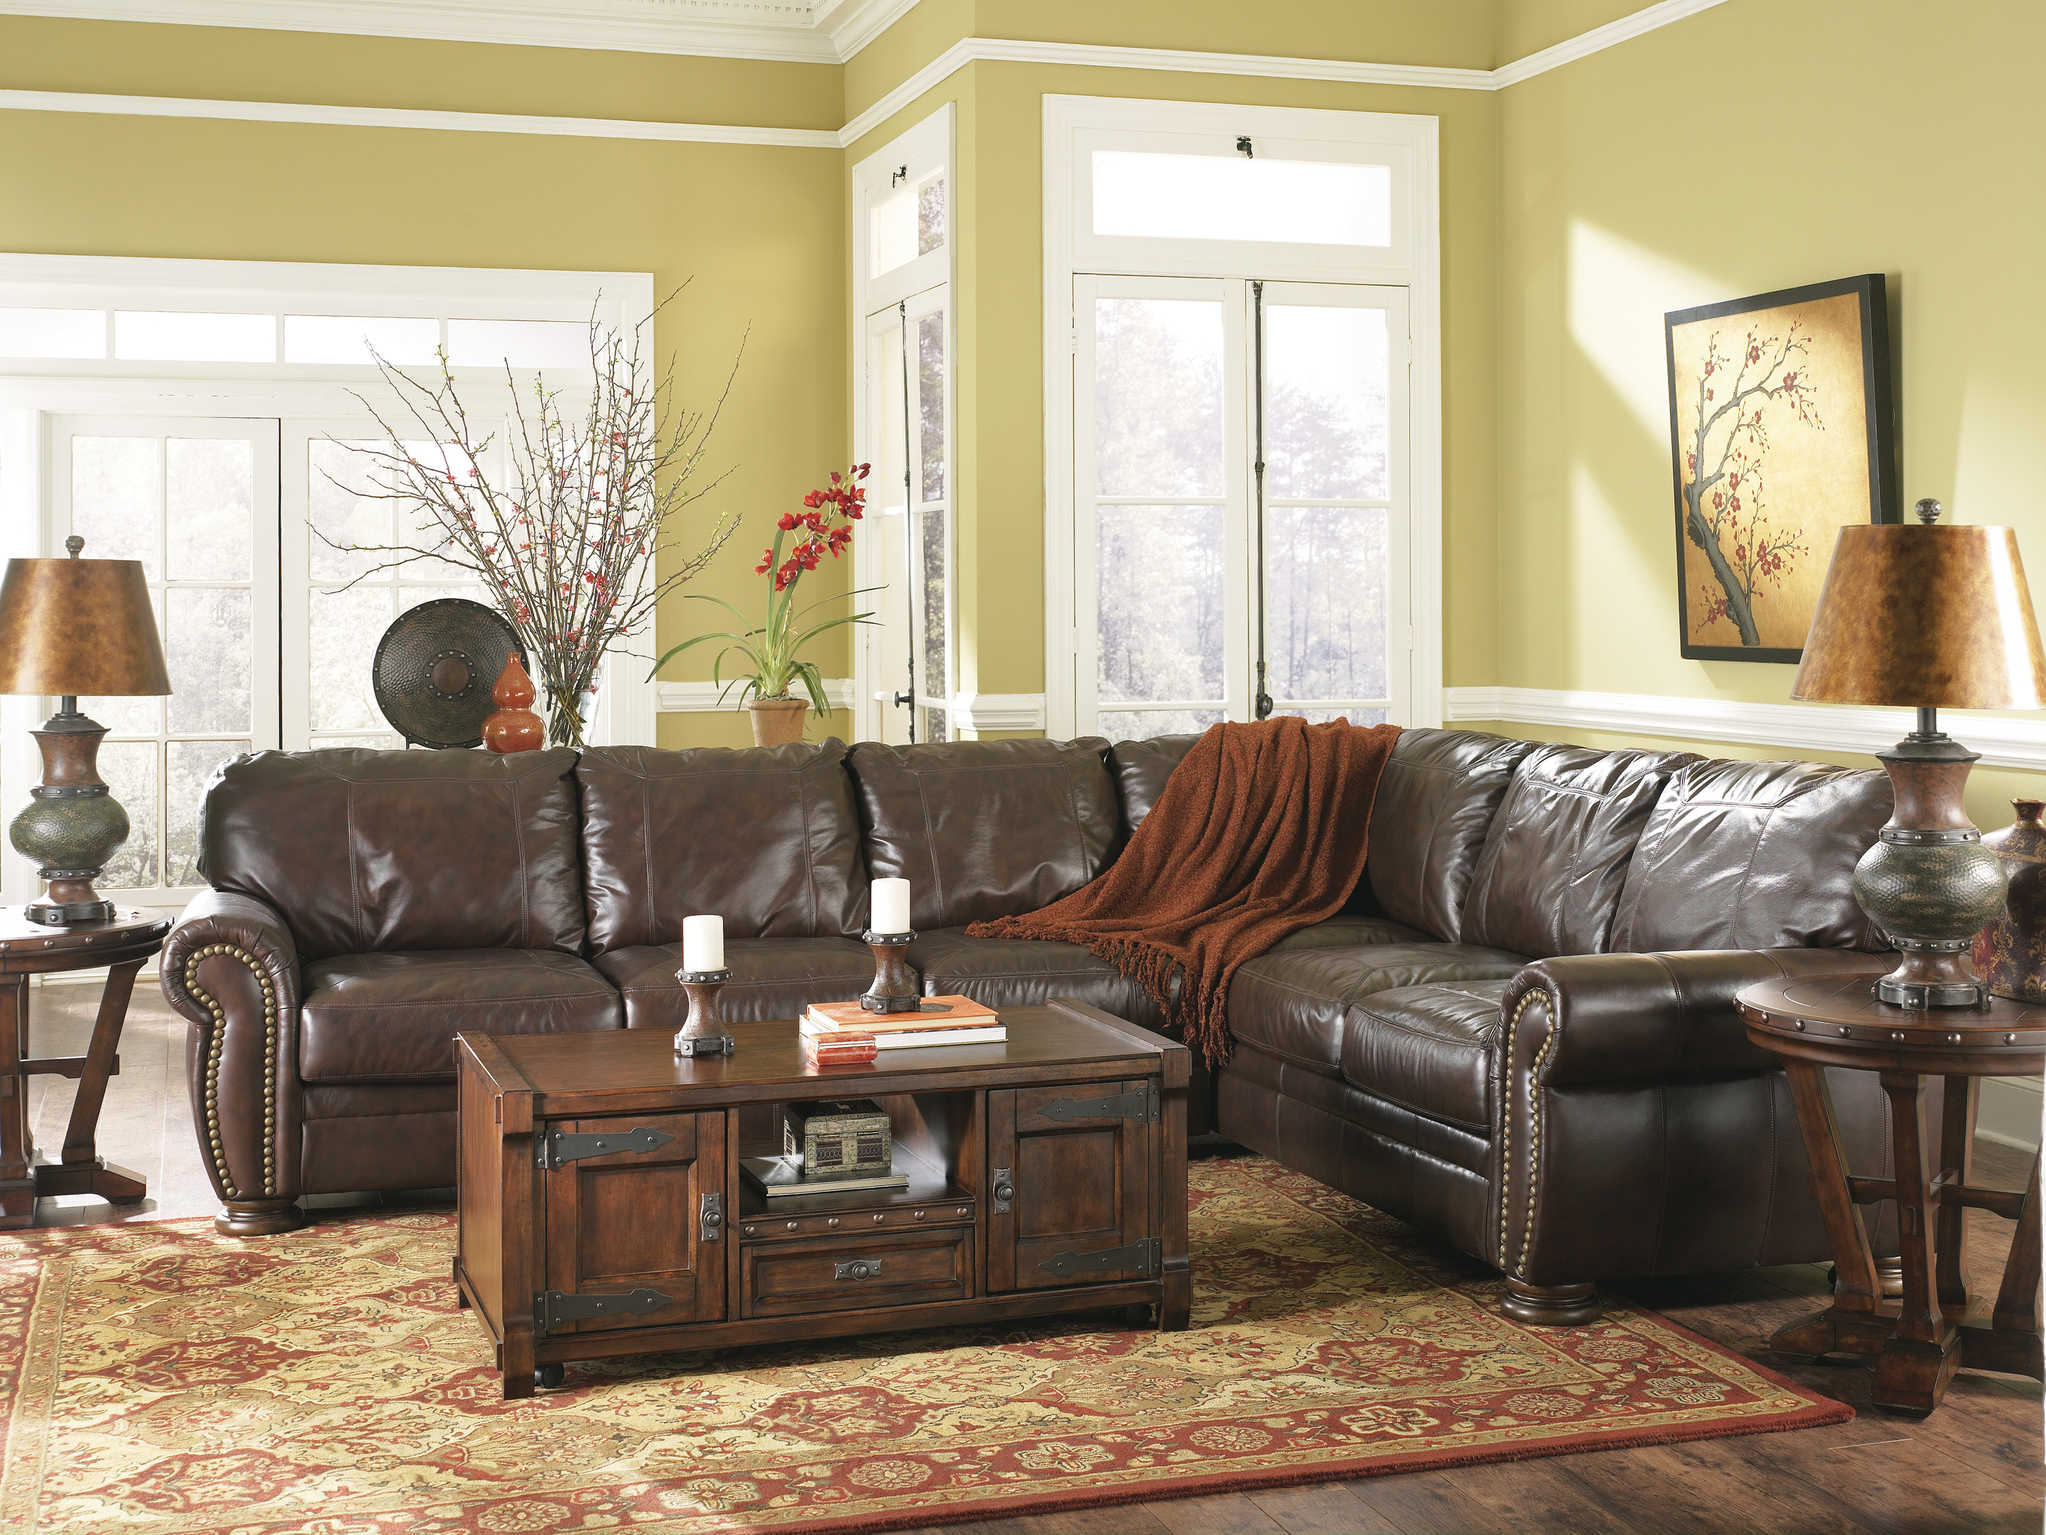 Distressed Leather Sectional Homesfeed with regard to measurements 2046 X 1535